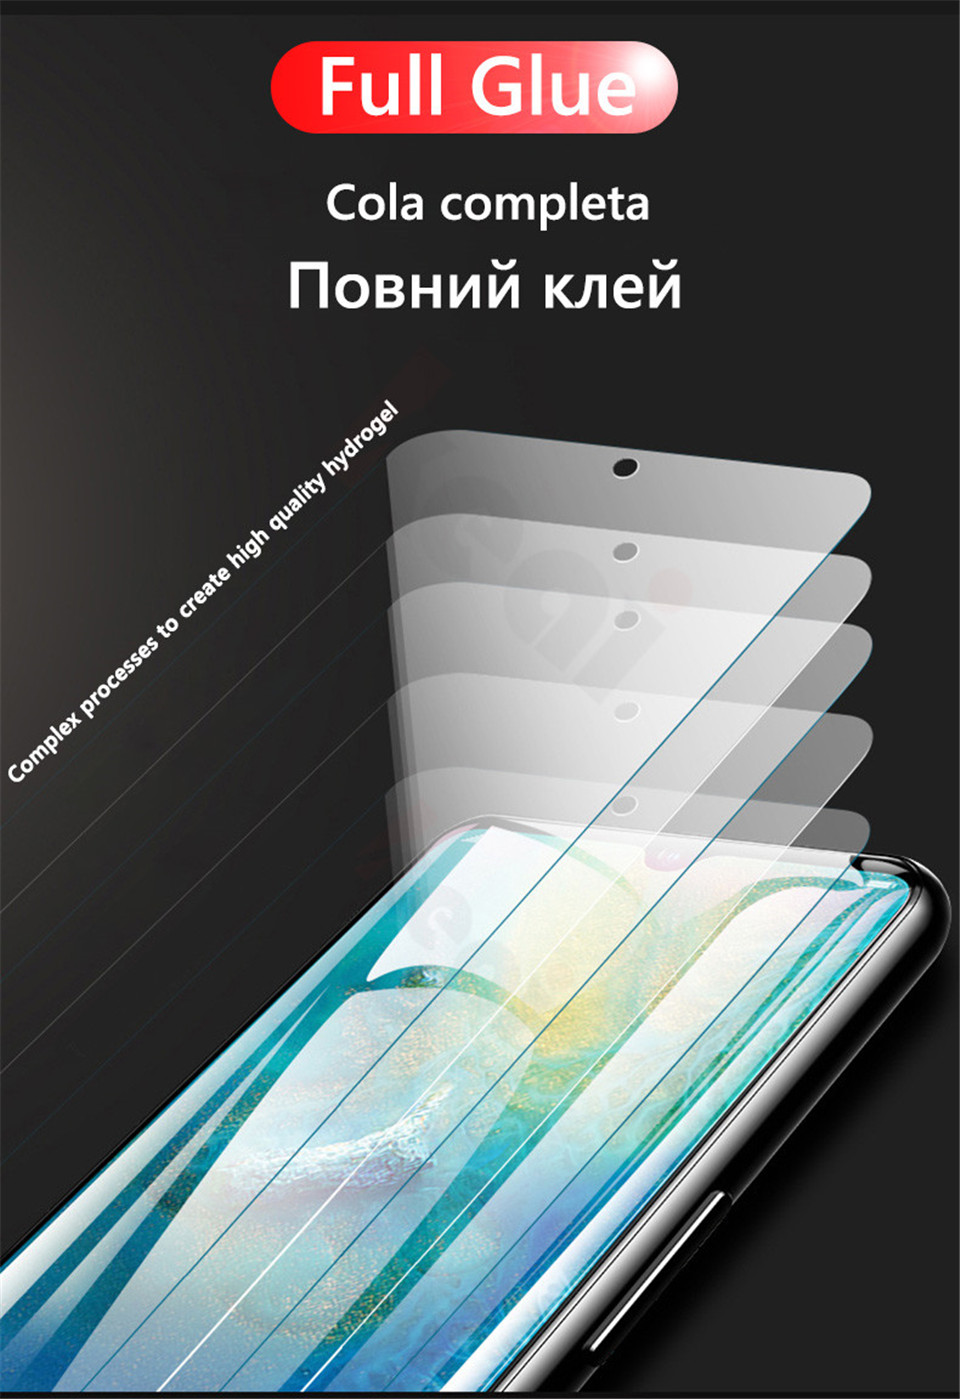 20D Screen Protector Hydrogel Film For Huawei P40 P20 P30 Lite Protective Film For Huawei Mate 20 Pro 10 Lite Film Not Glass HTB1tLV.V3HqK1RjSZJnq6zNLpXa9